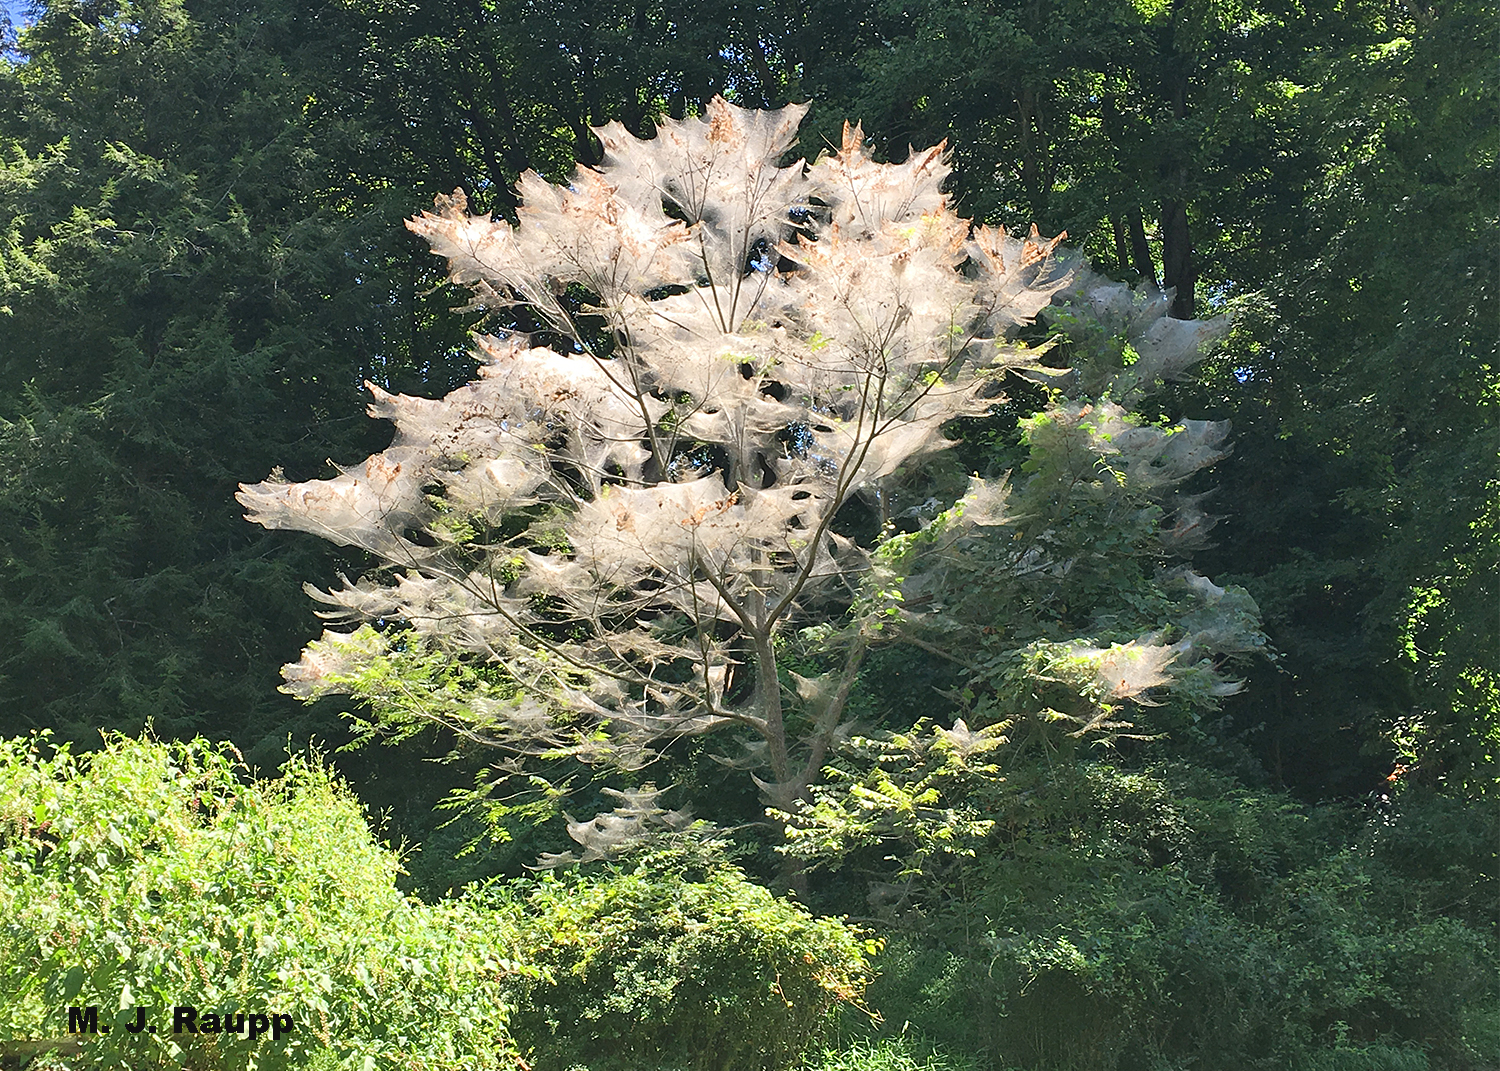 An explosive season for fall webworms finds trees throughout our region festooned with silken webs.